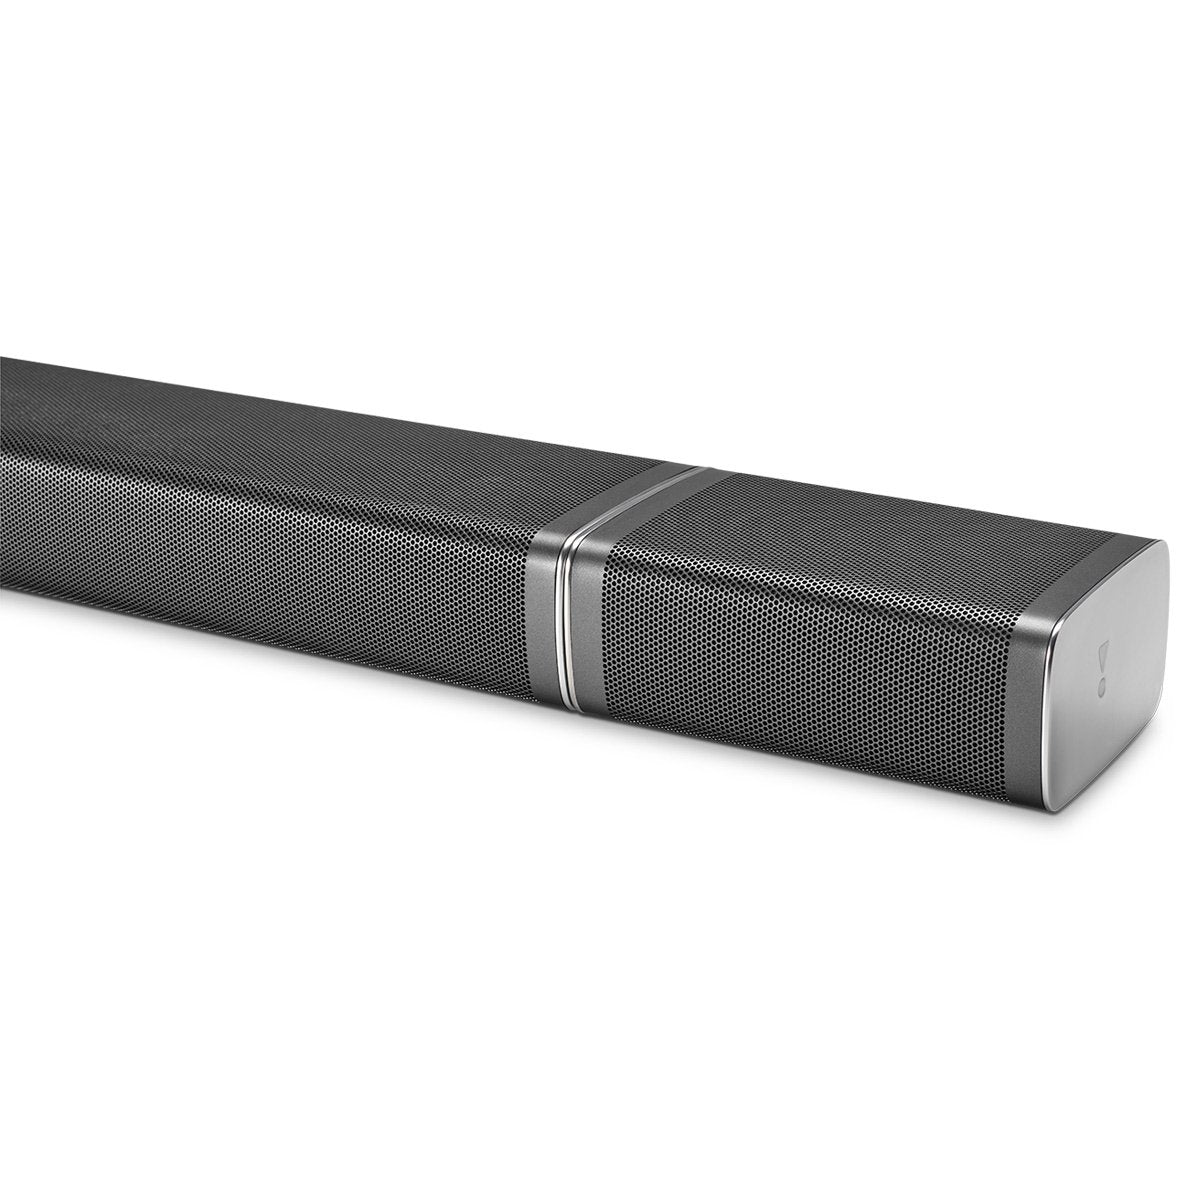 JBL 5.1CH 4K Ultra HD Soundbar With MultiBeam™ Sound Technology & True Wireless Speakers - Black